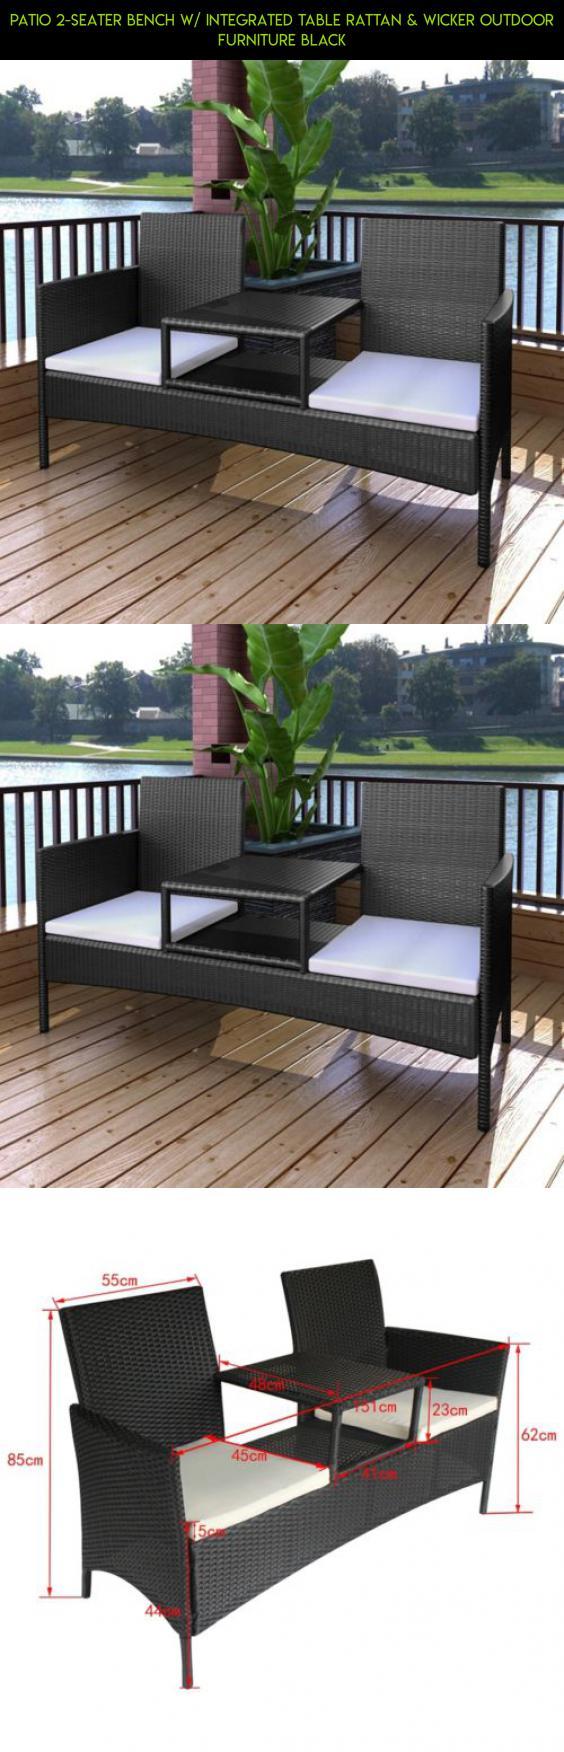 Patio 2 Seater Bench W/ Integrated Table Rattan U0026 Wicker Outdoor Furniture  Black #